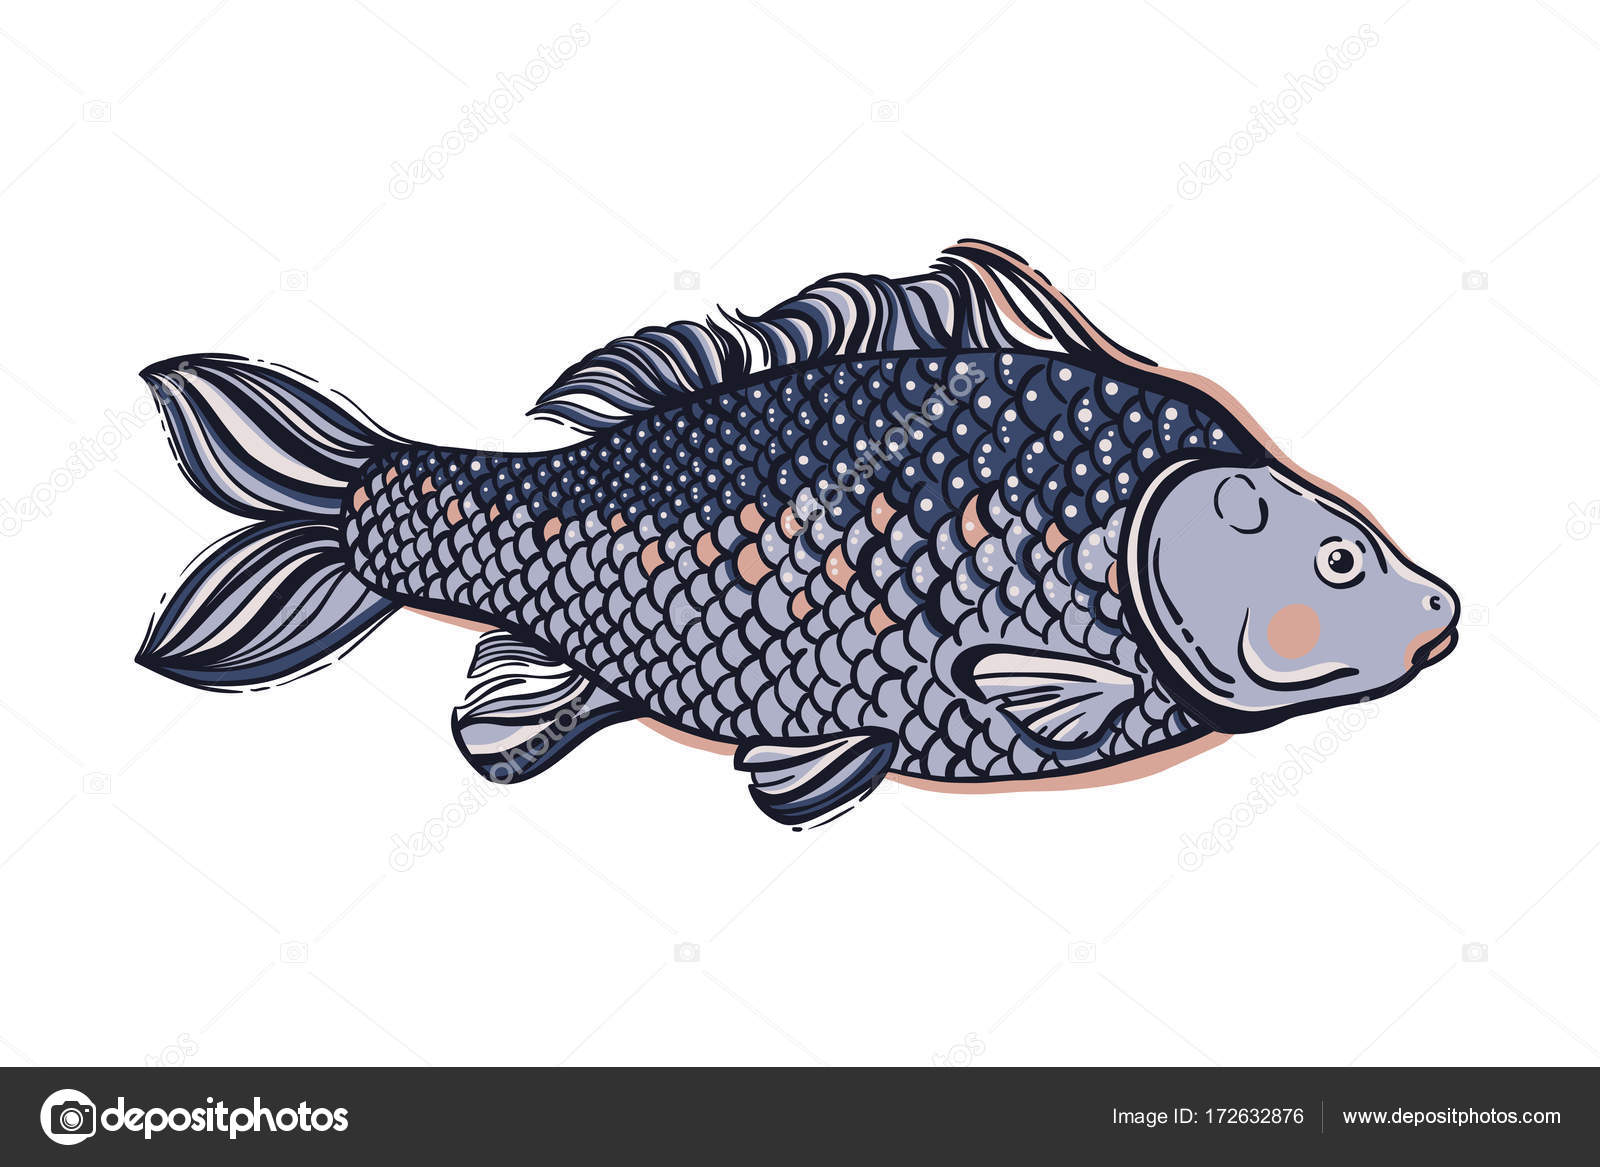 Carp chinese symbol of good luck courage persistence chinese symbol of good luck courage persistence perseverance wisdom and biocorpaavc Image collections